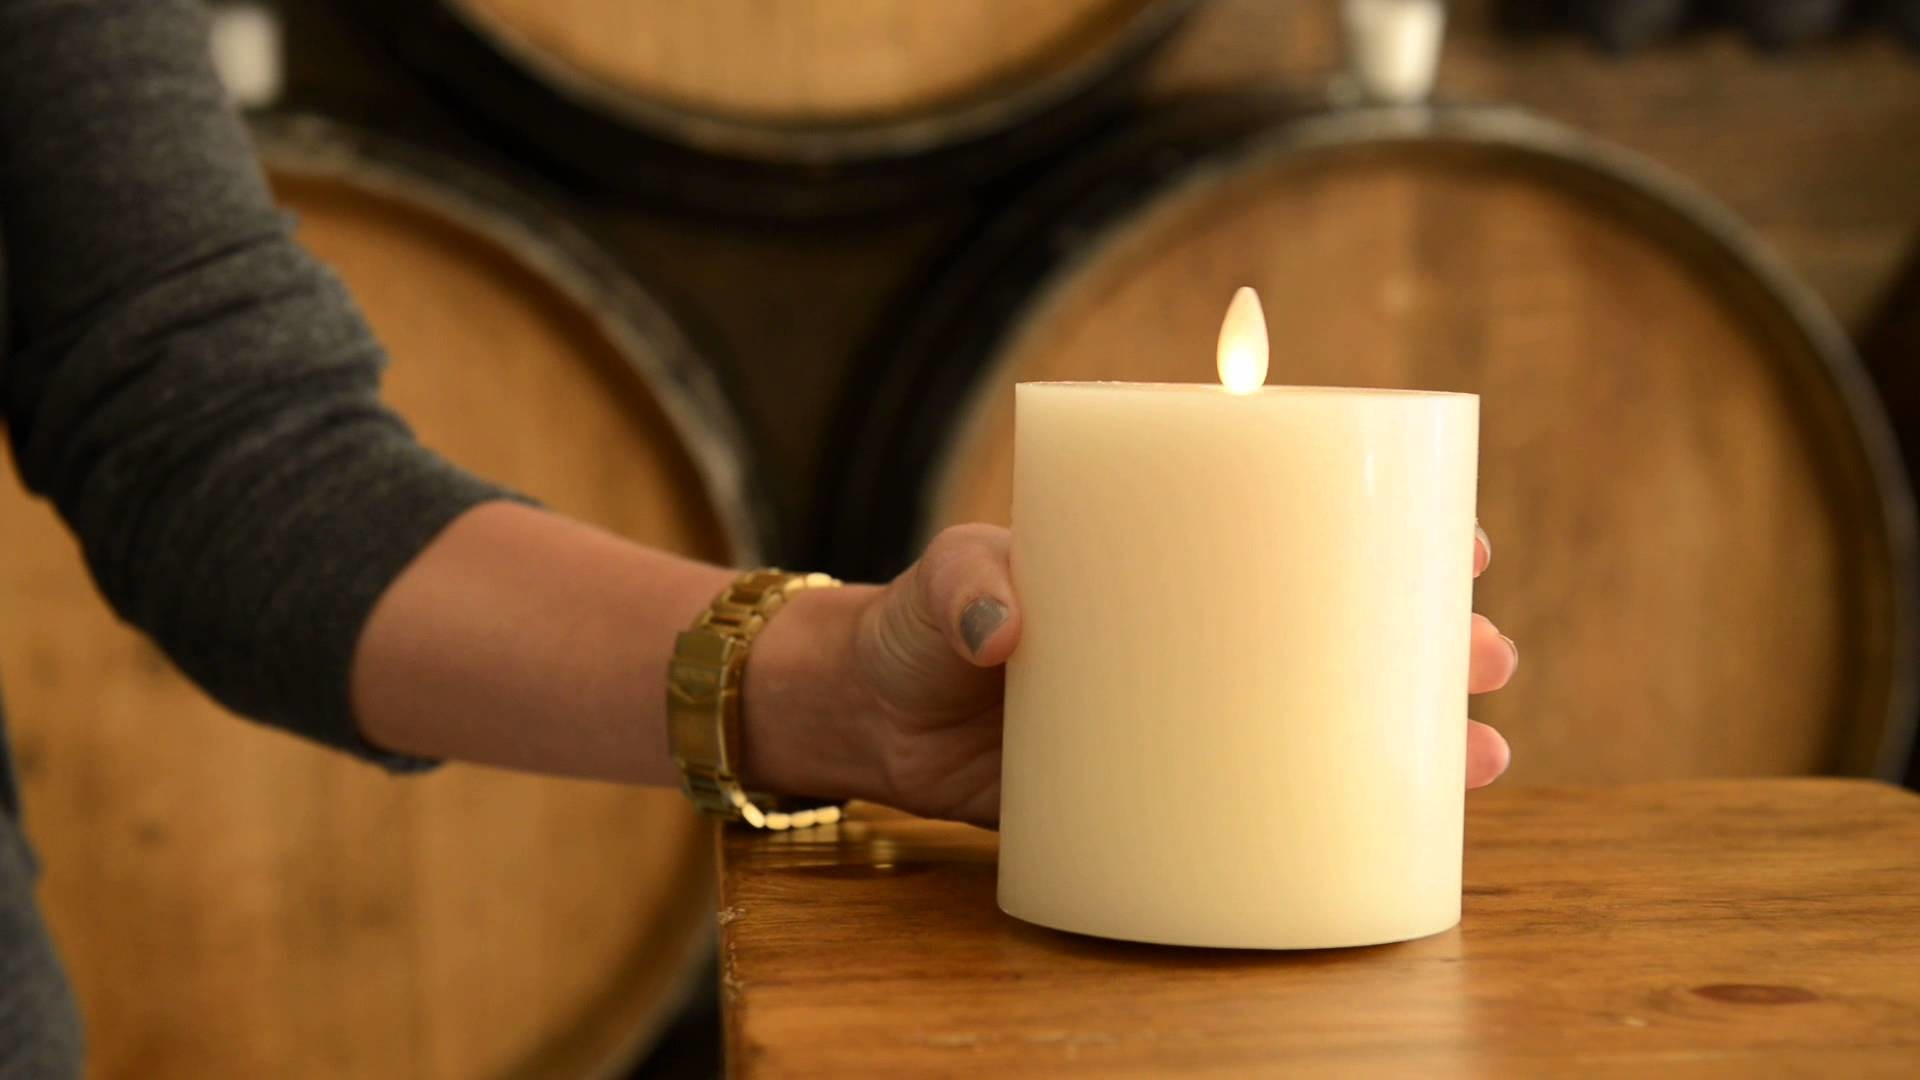 Enhance your home decor with Flameless Candles | Pottery Barn